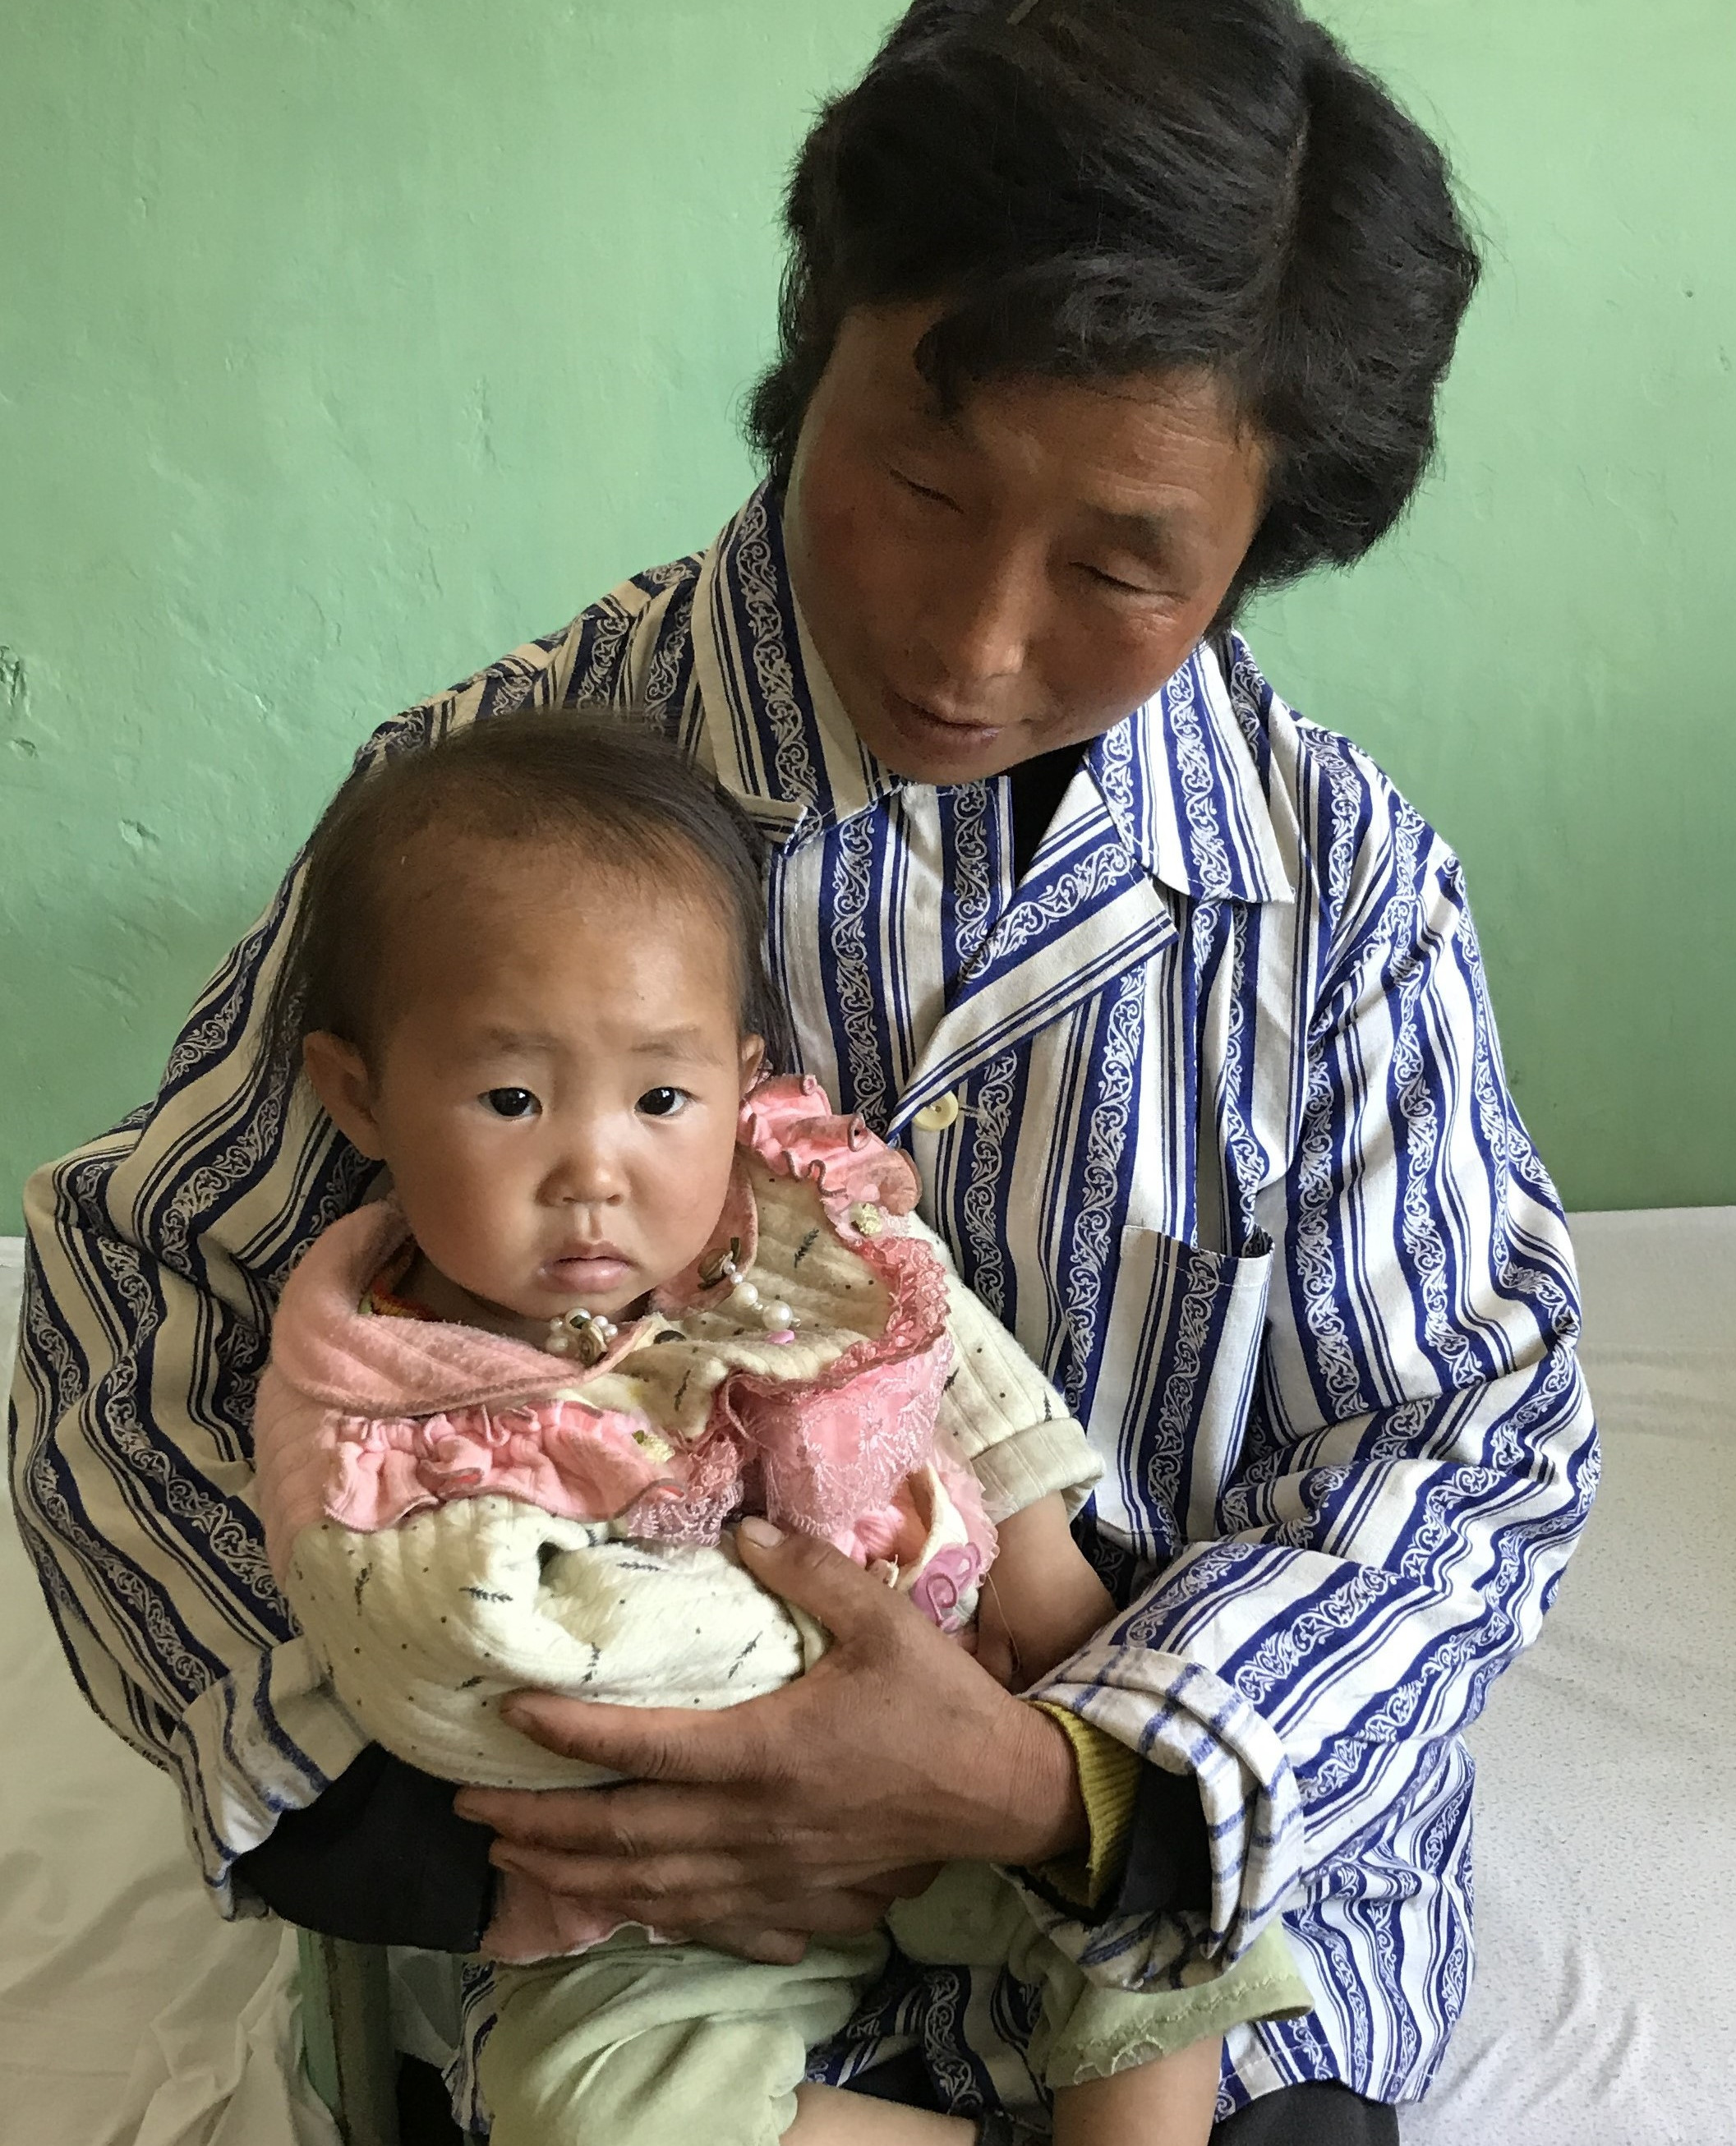 ©UNICEF/2017/Rahimov Ri Haing Pok, 2 years, and her mother benefitting from better treatment through improved IMNCI.